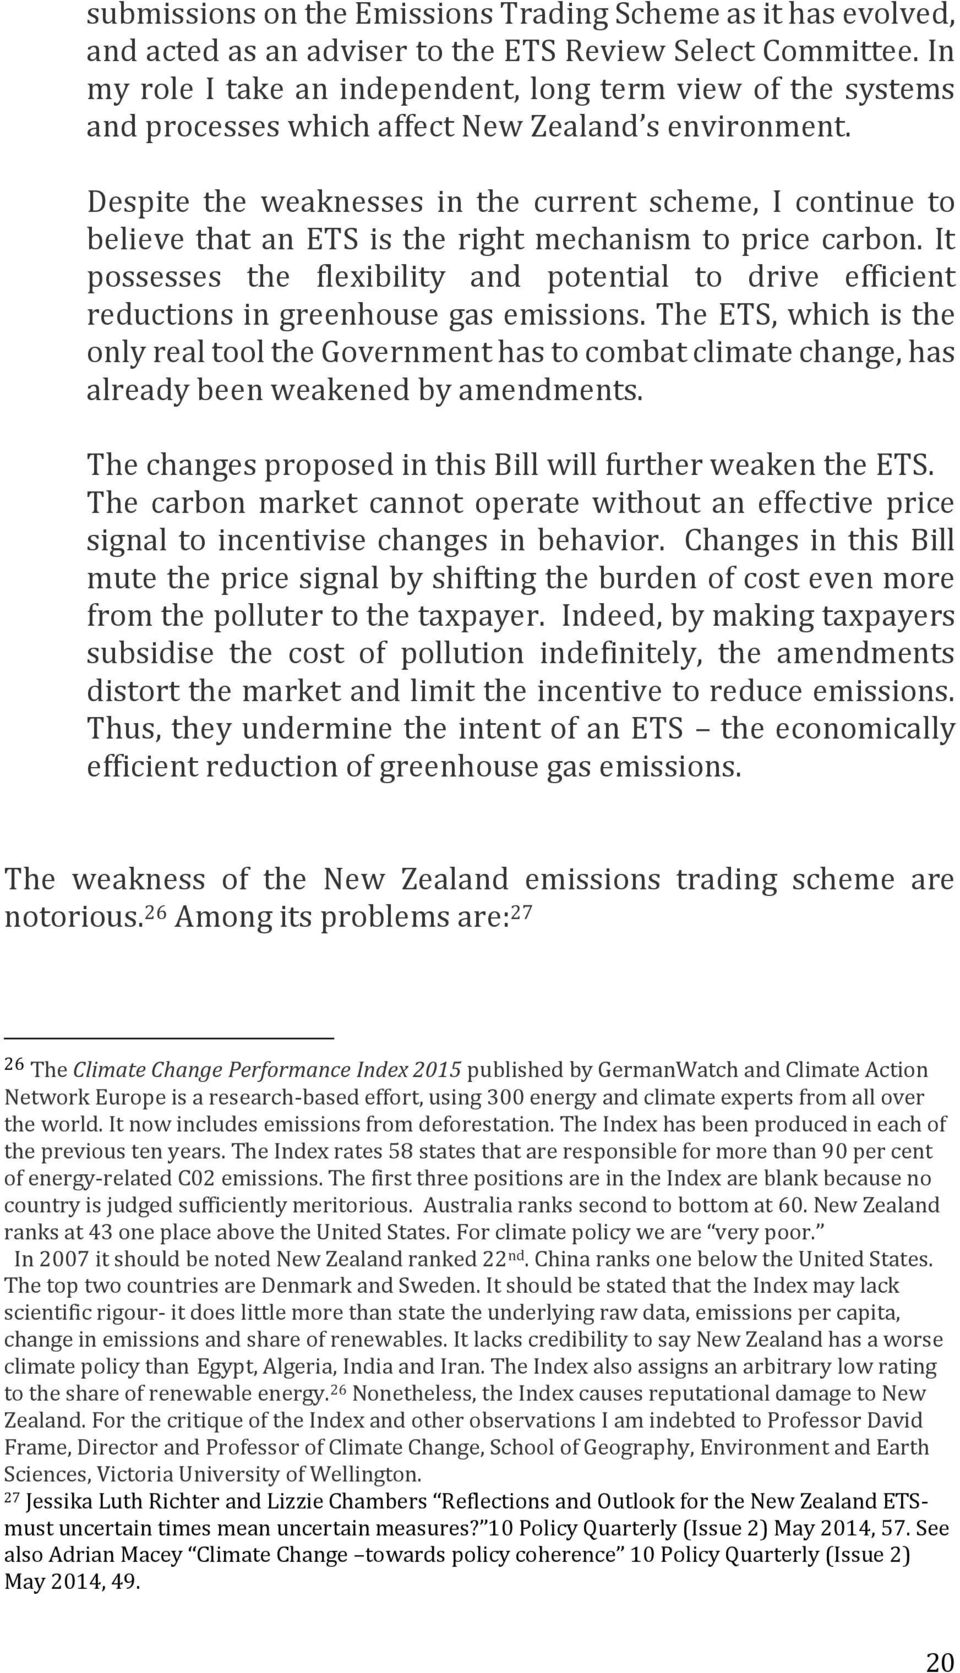 Despite the weaknesses in the current scheme, I continue to believe that an ETS is the right mechanism to price carbon.